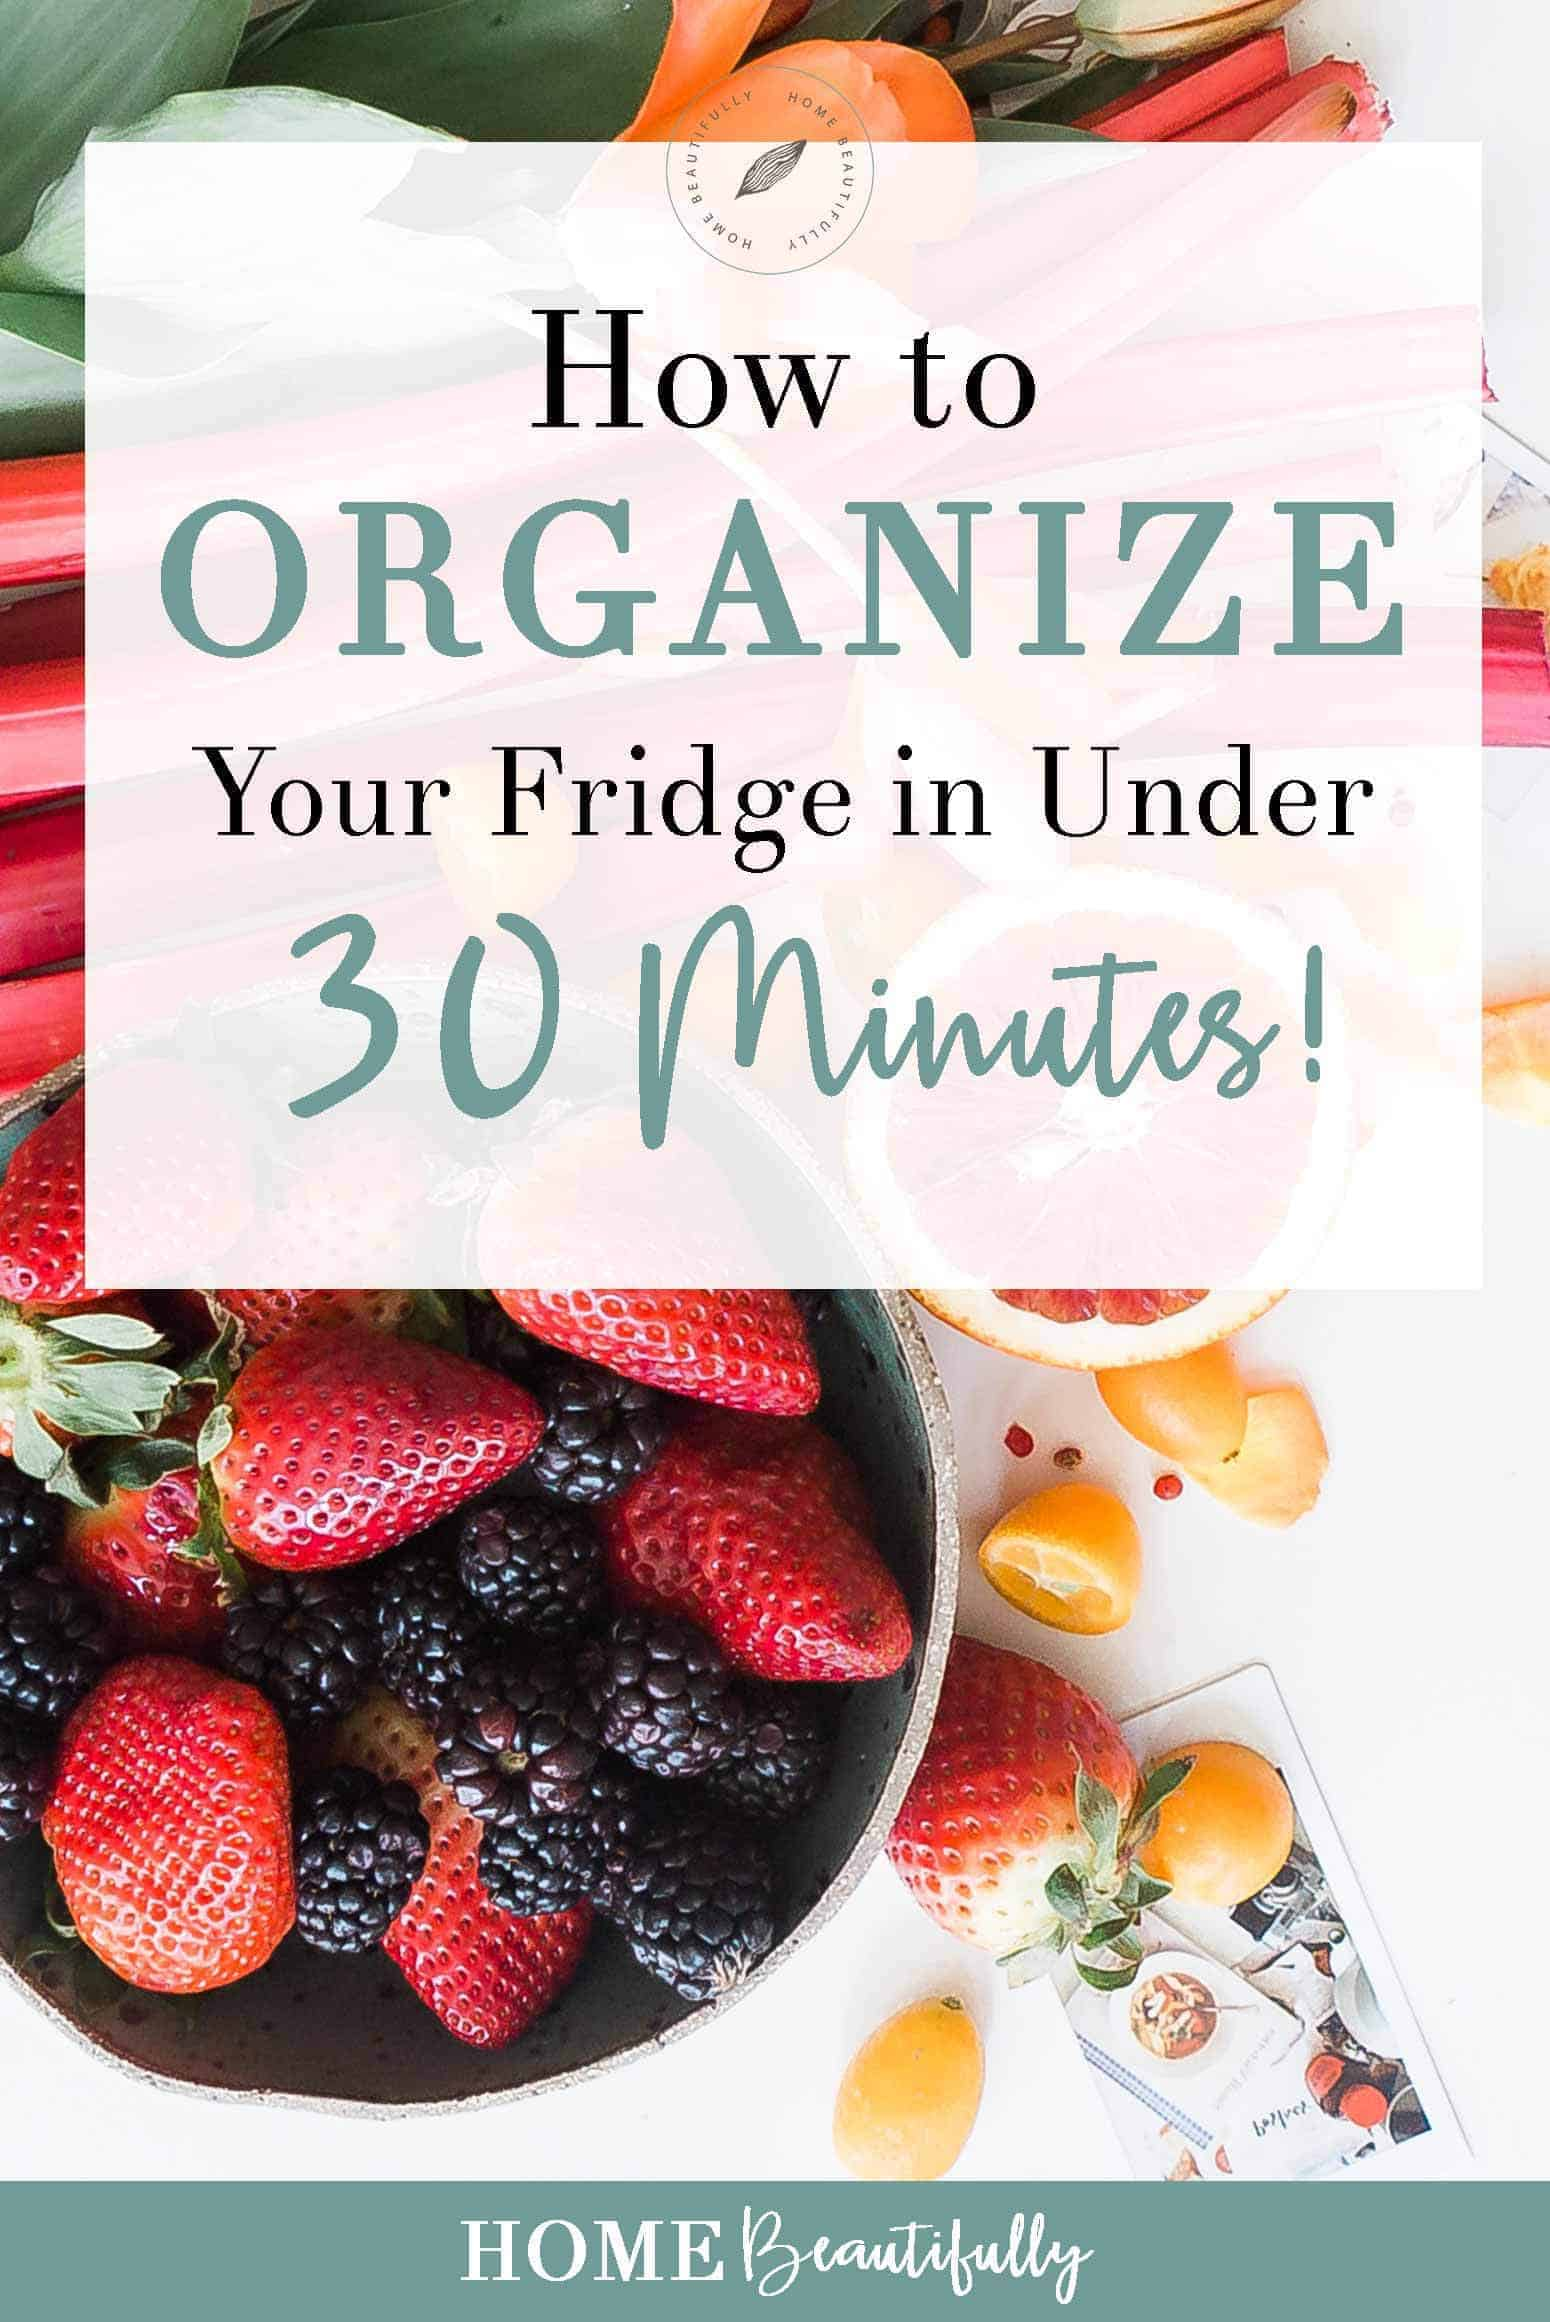 How to Organize Your Fridge and refrigerator organization ideas